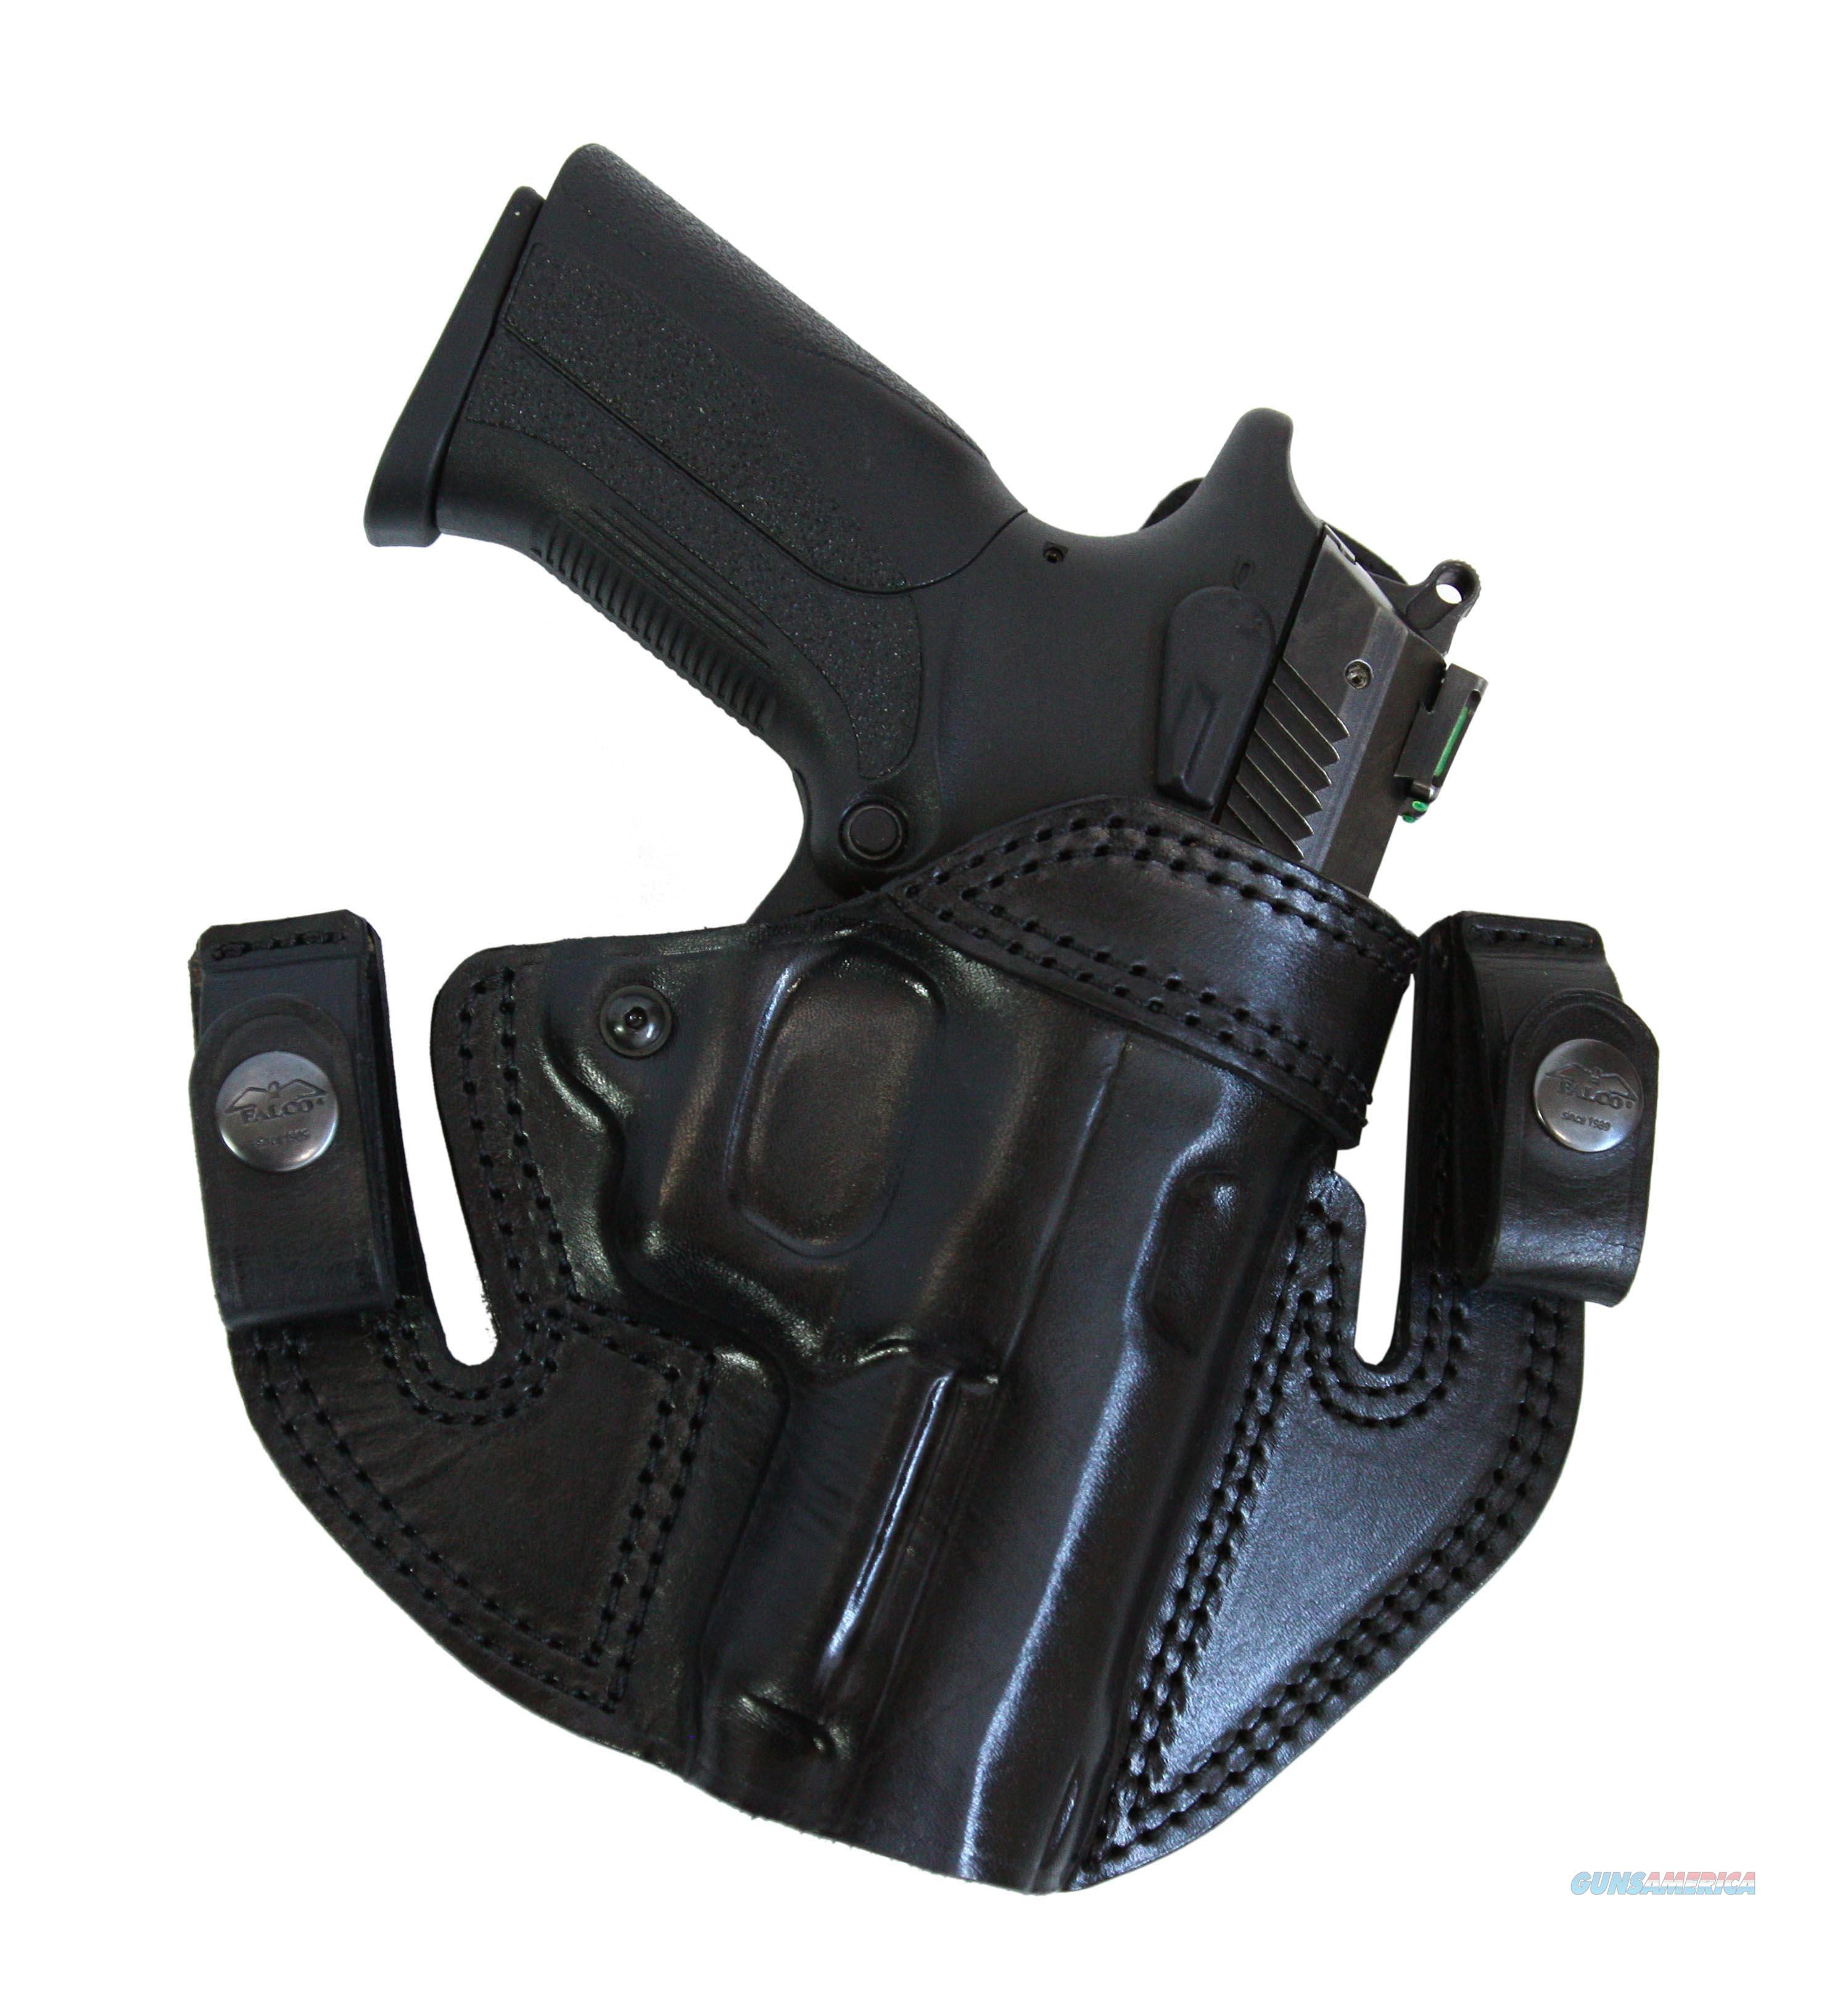 IWB / OWB Leather Gun Holster  Heckler & Koch P30  Non-Guns > Holsters and Gunleather > Concealed Carry